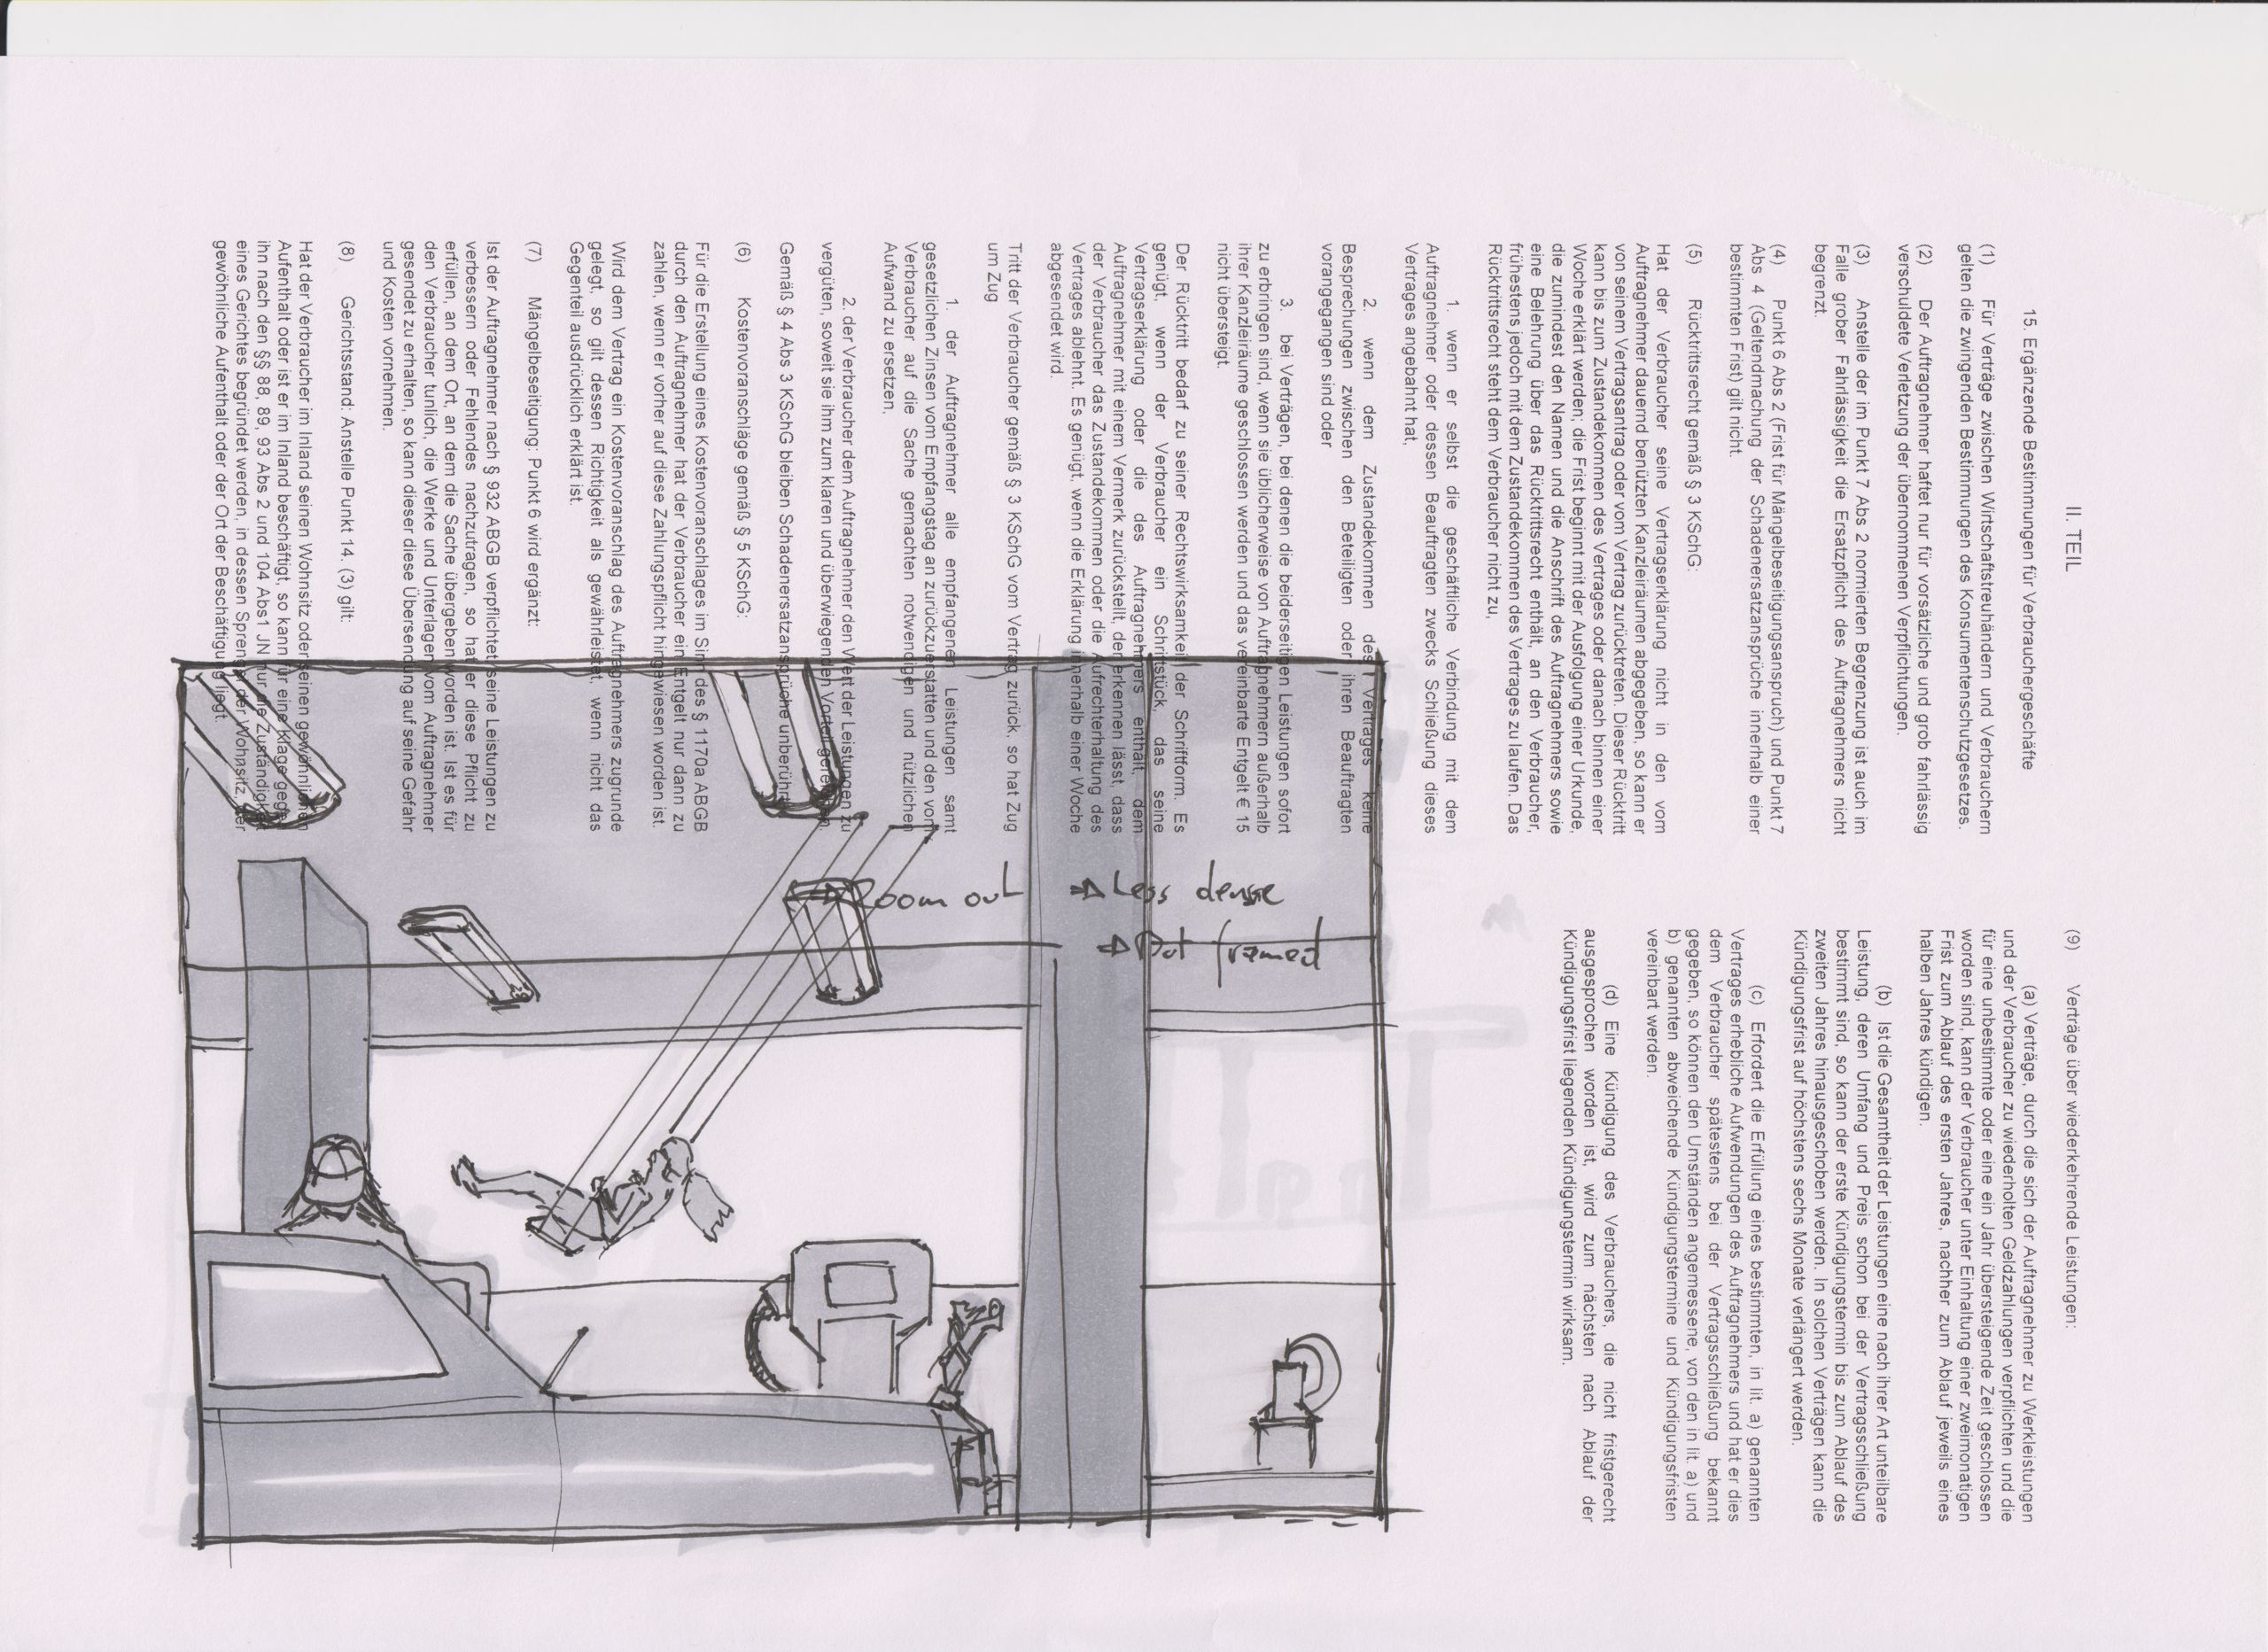 A paper sheet printed with german terms of service, on top of it an ink and marker panel showing a gas station with taps, a car, someone filling their tank, and against the sky a surreal element of what appears to be a moving girl on a swing hanging from the open tank station roof